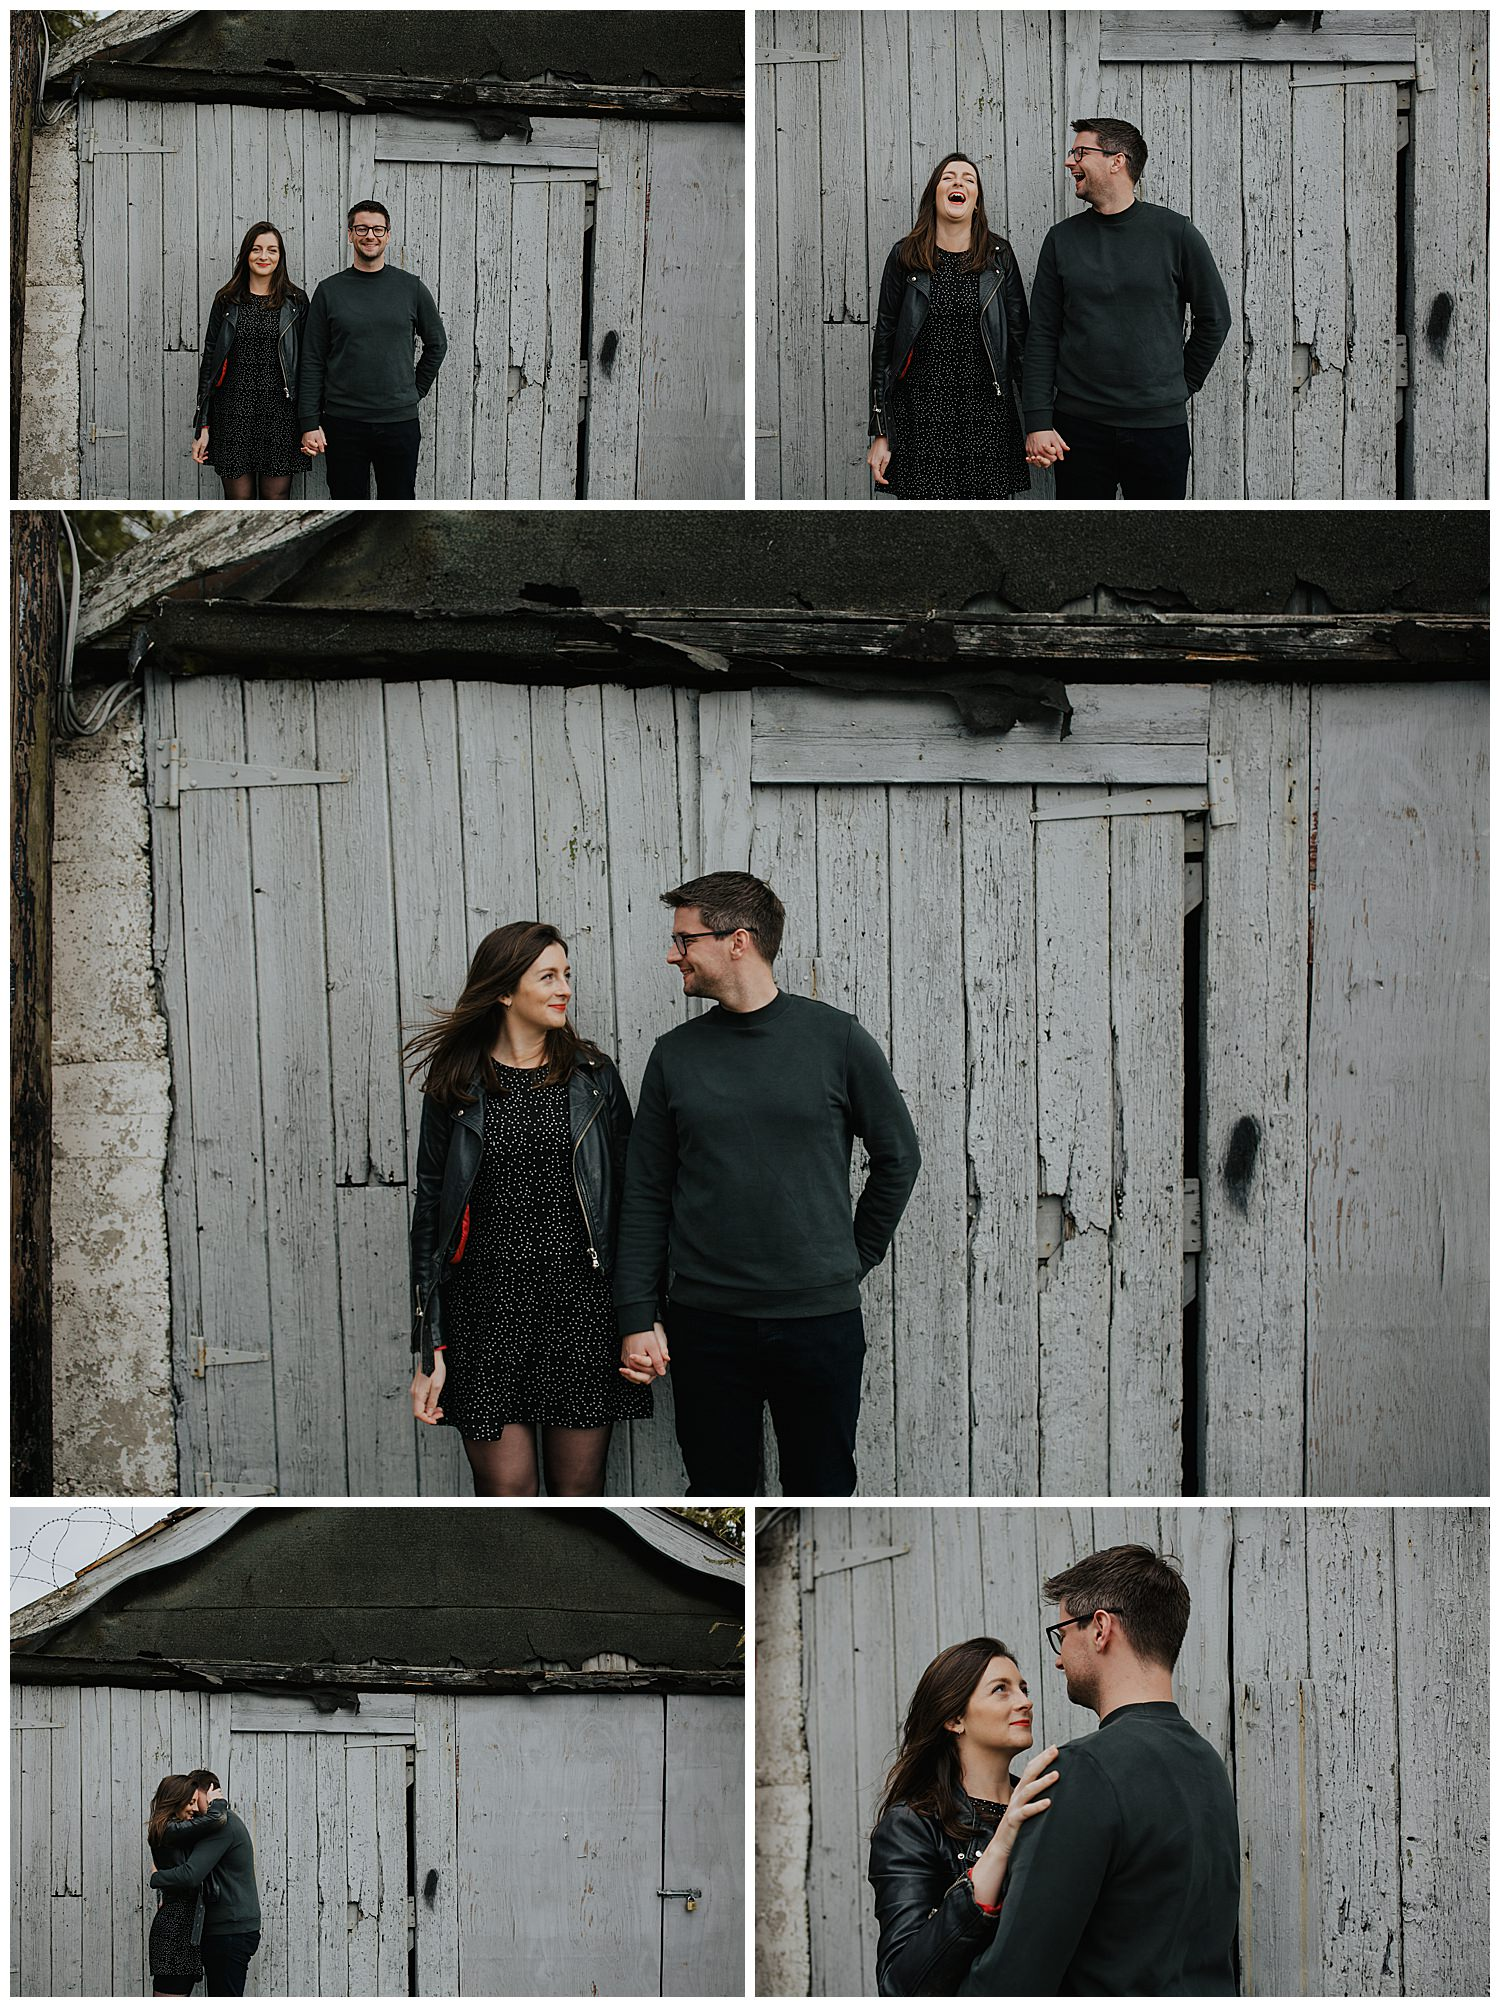 j-l-house-engagement-session-dublin-wedding-photographer-livia-figueiredo_11.jpg